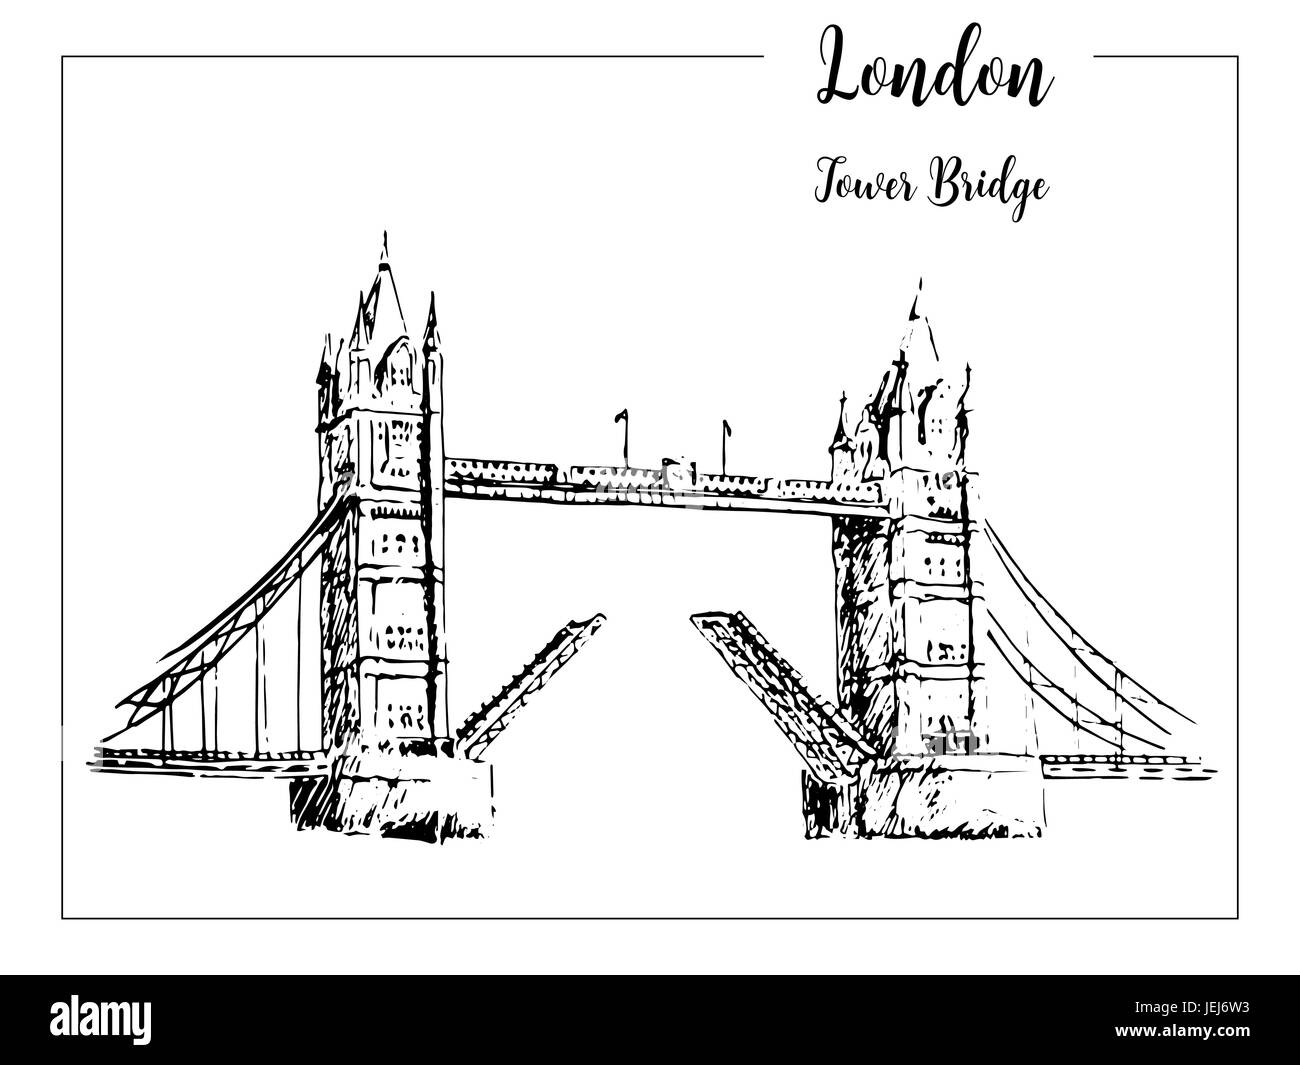 Tower Bridge. London symbol. Beautiful hand drawn vector sketch illustration. - Stock Vector